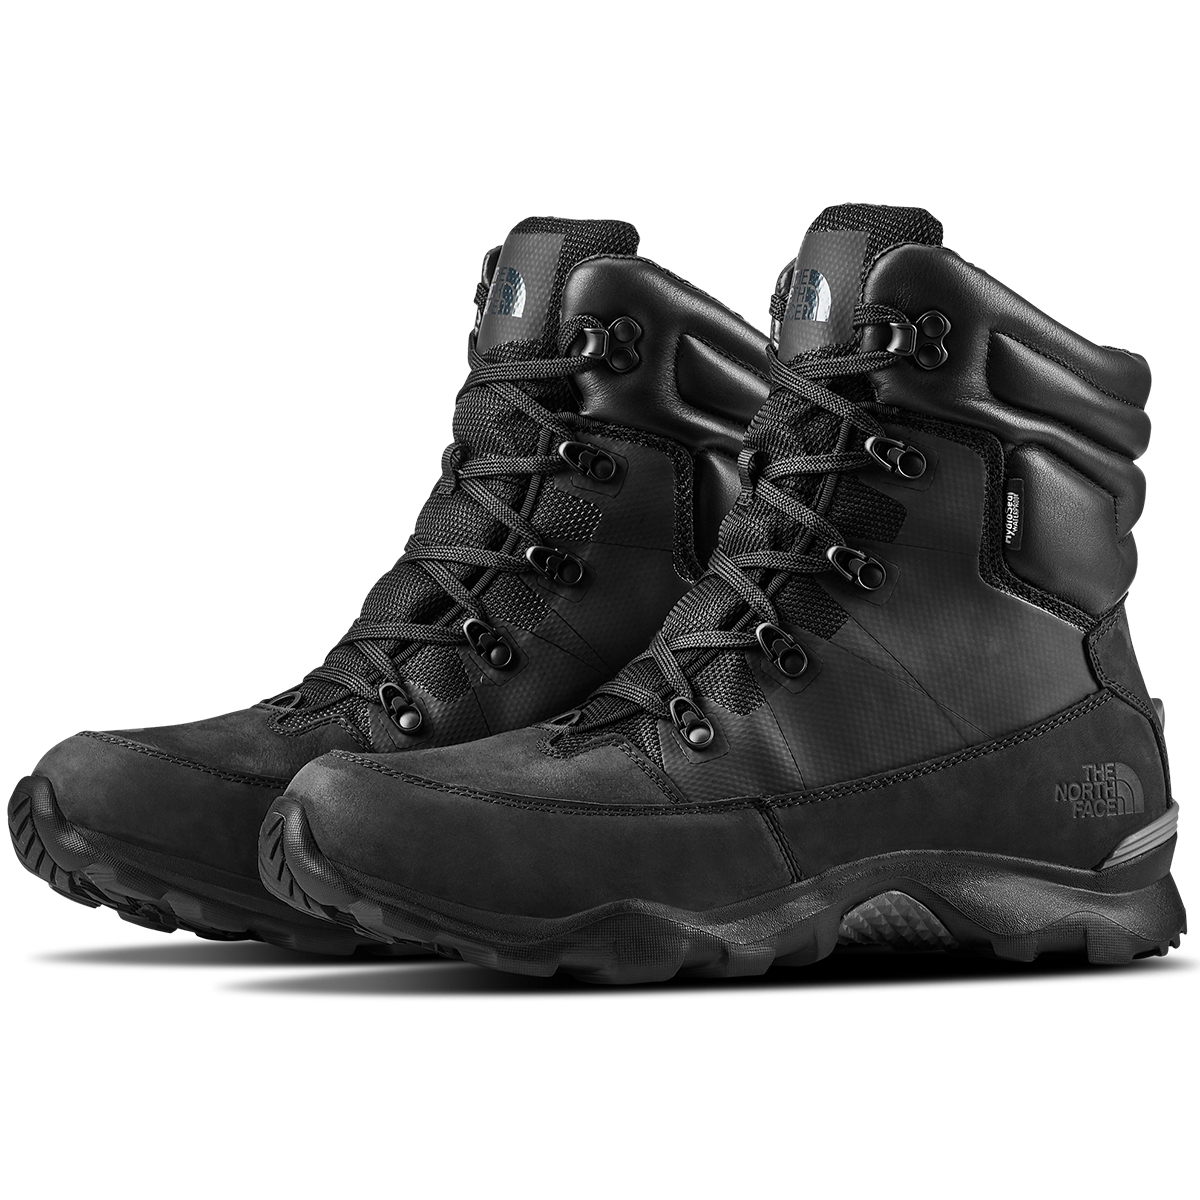 The North Face Men's Thermoball Lifty 400 Waterproof Insulated Winter Boots - Black, 10